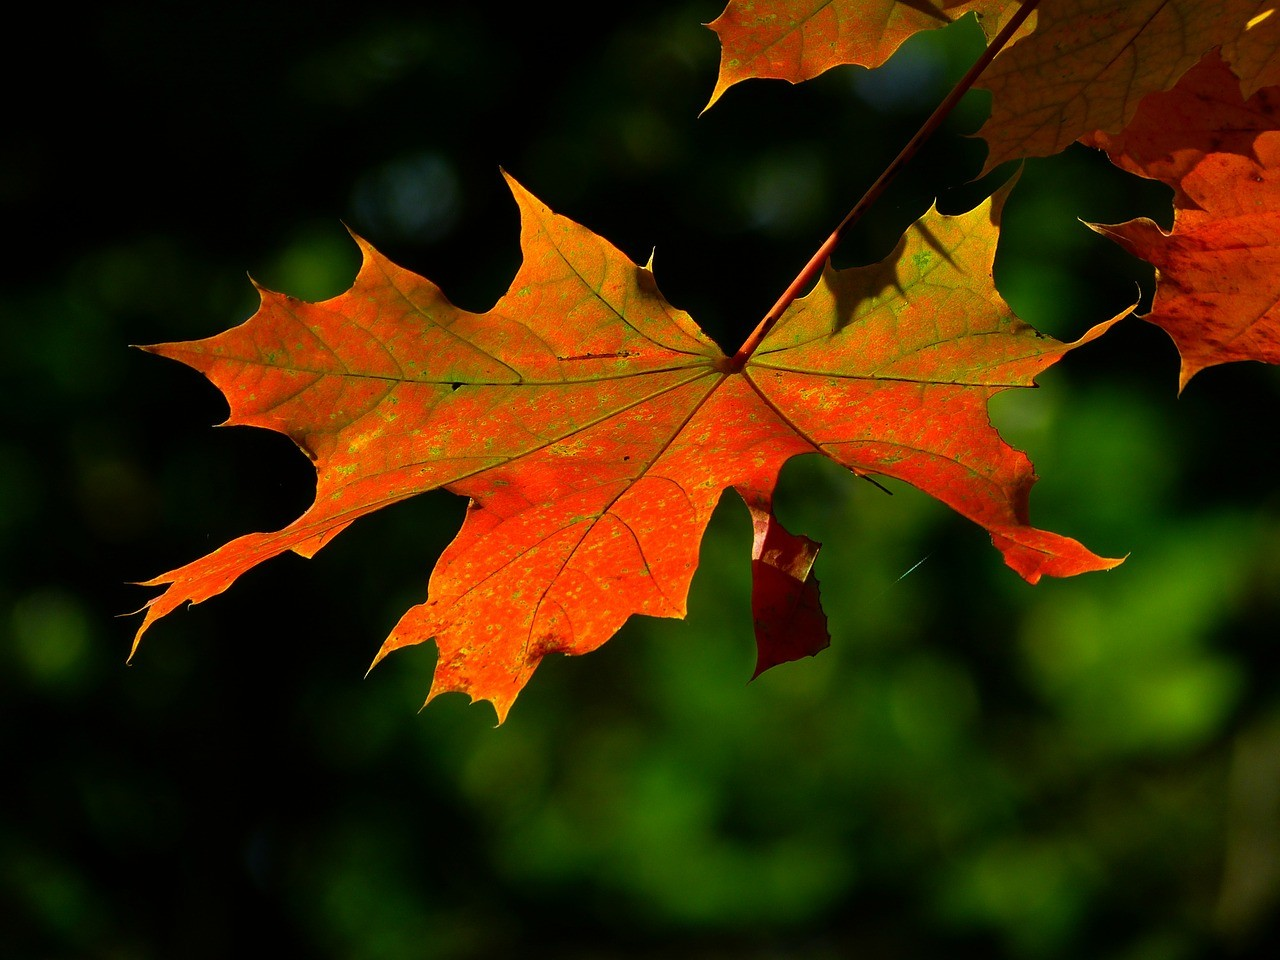 Write a poem or monologue from the perspective of a leaf about to fall.